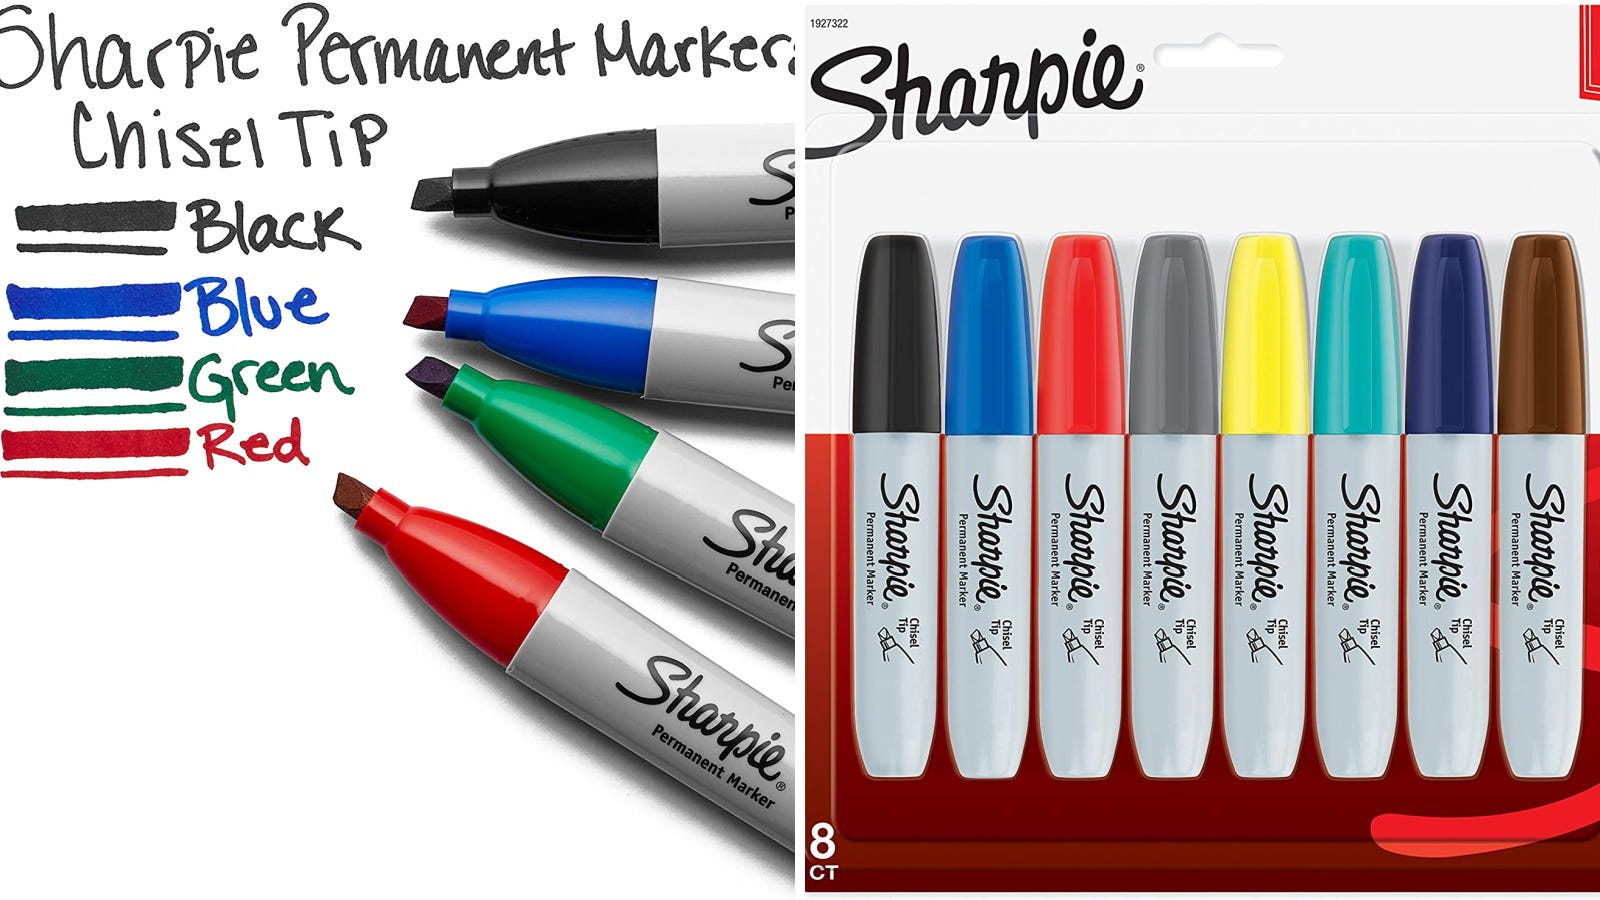 Two images featuring chisel tipped sharpies.